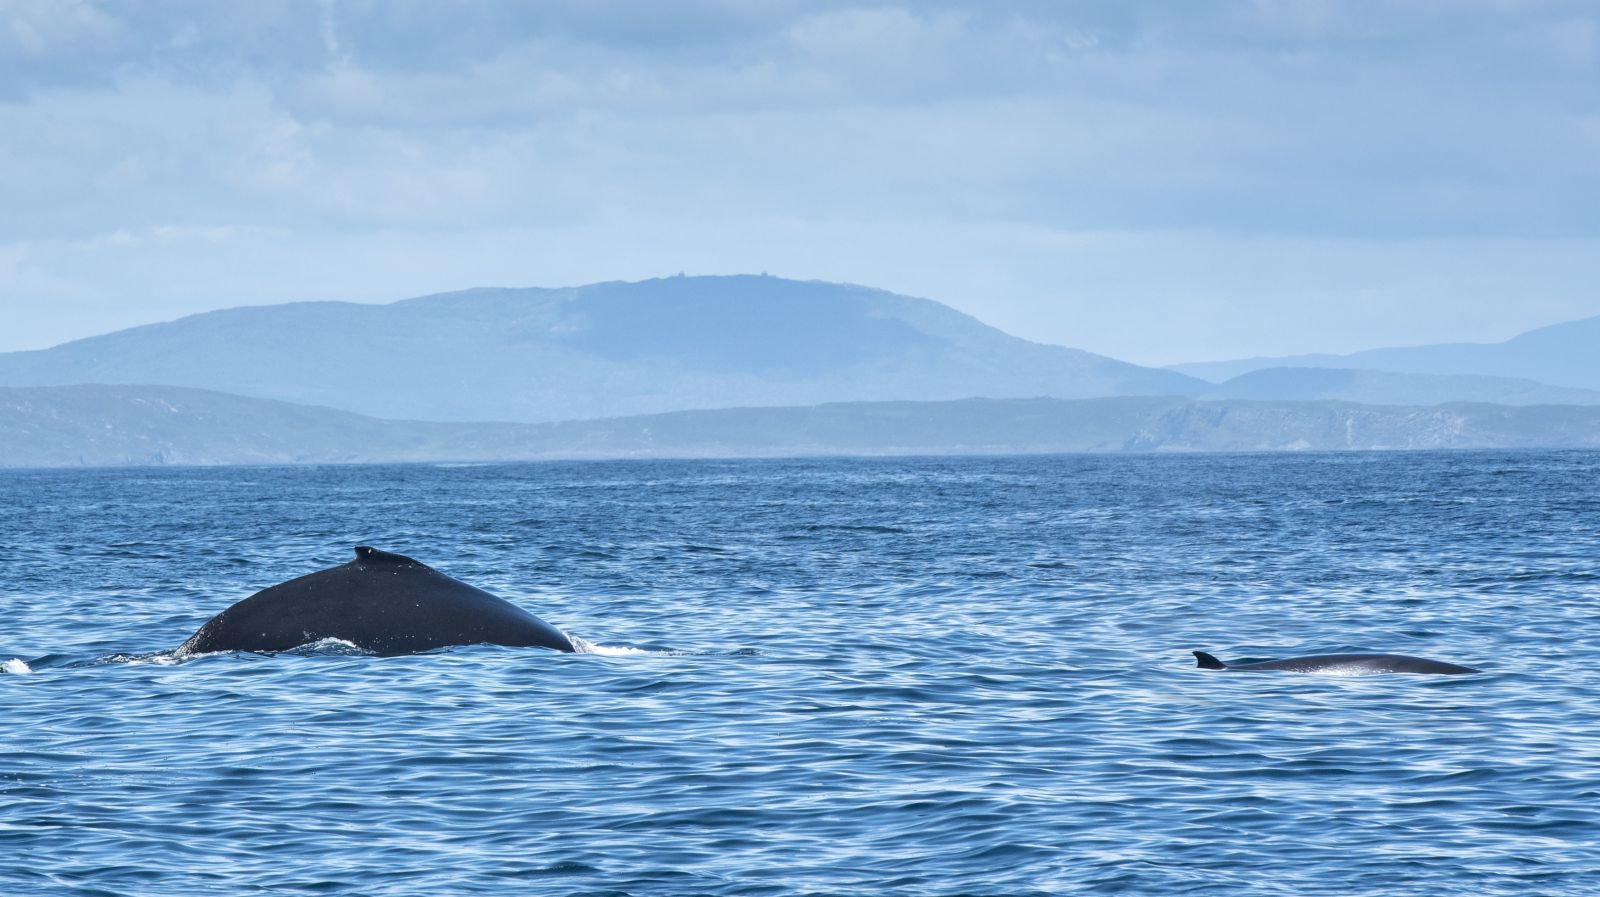 Cork Whale Watch Photo Gallery — Whale watching in West Cork